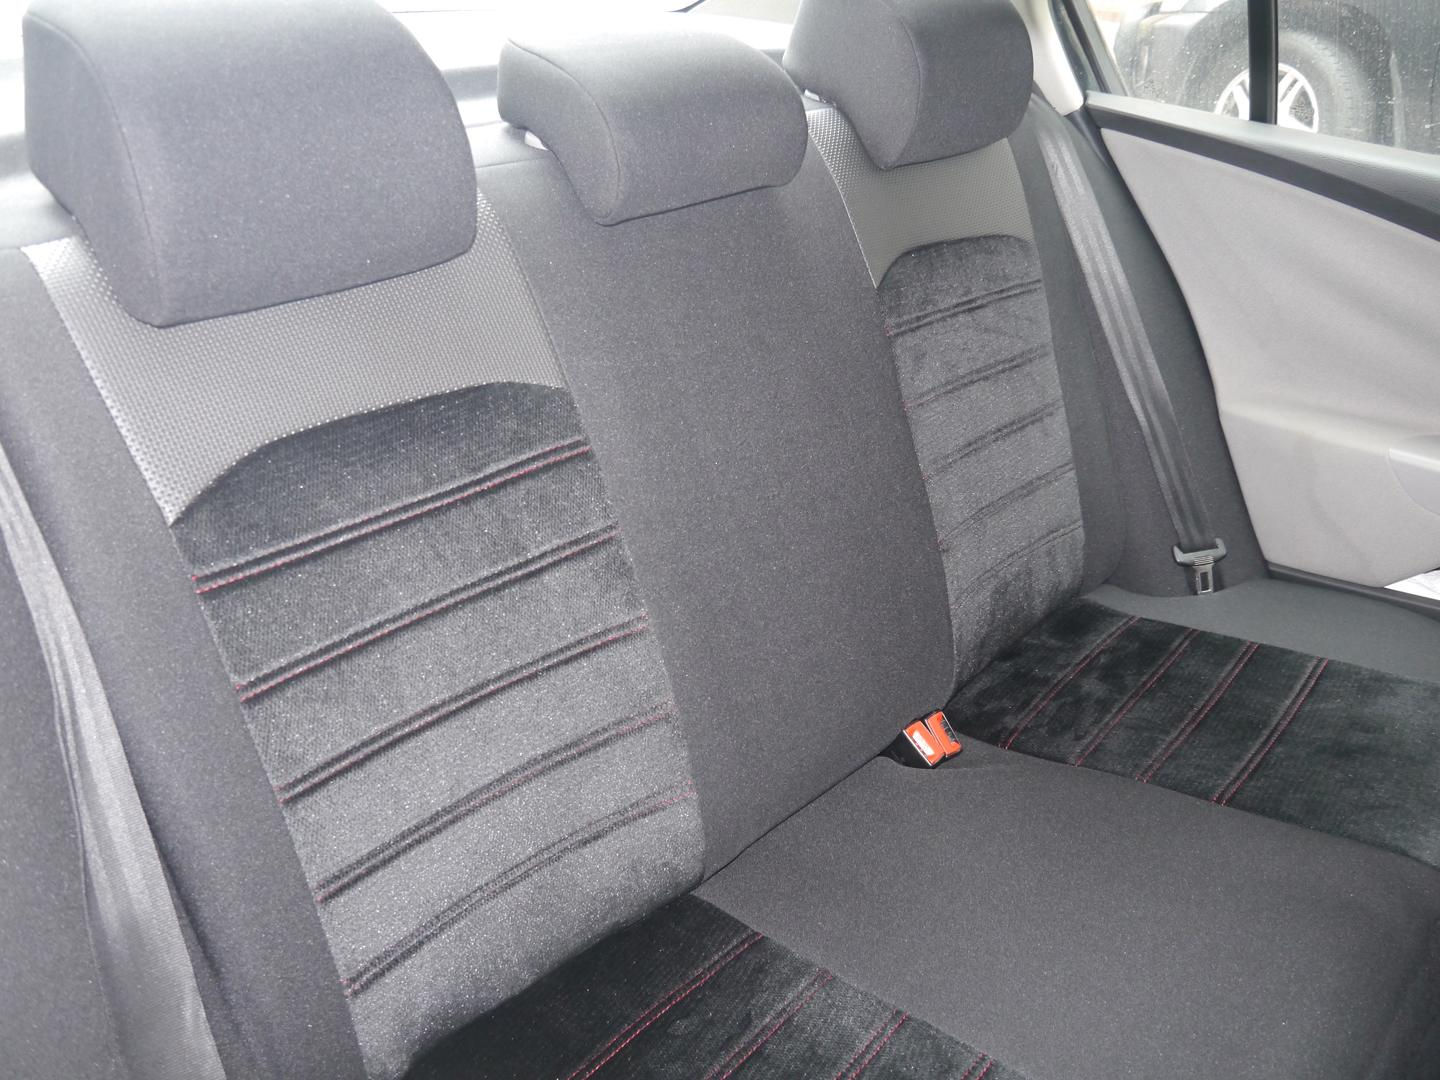 car seat covers protectors for toyota rav 4 iv no4. Black Bedroom Furniture Sets. Home Design Ideas